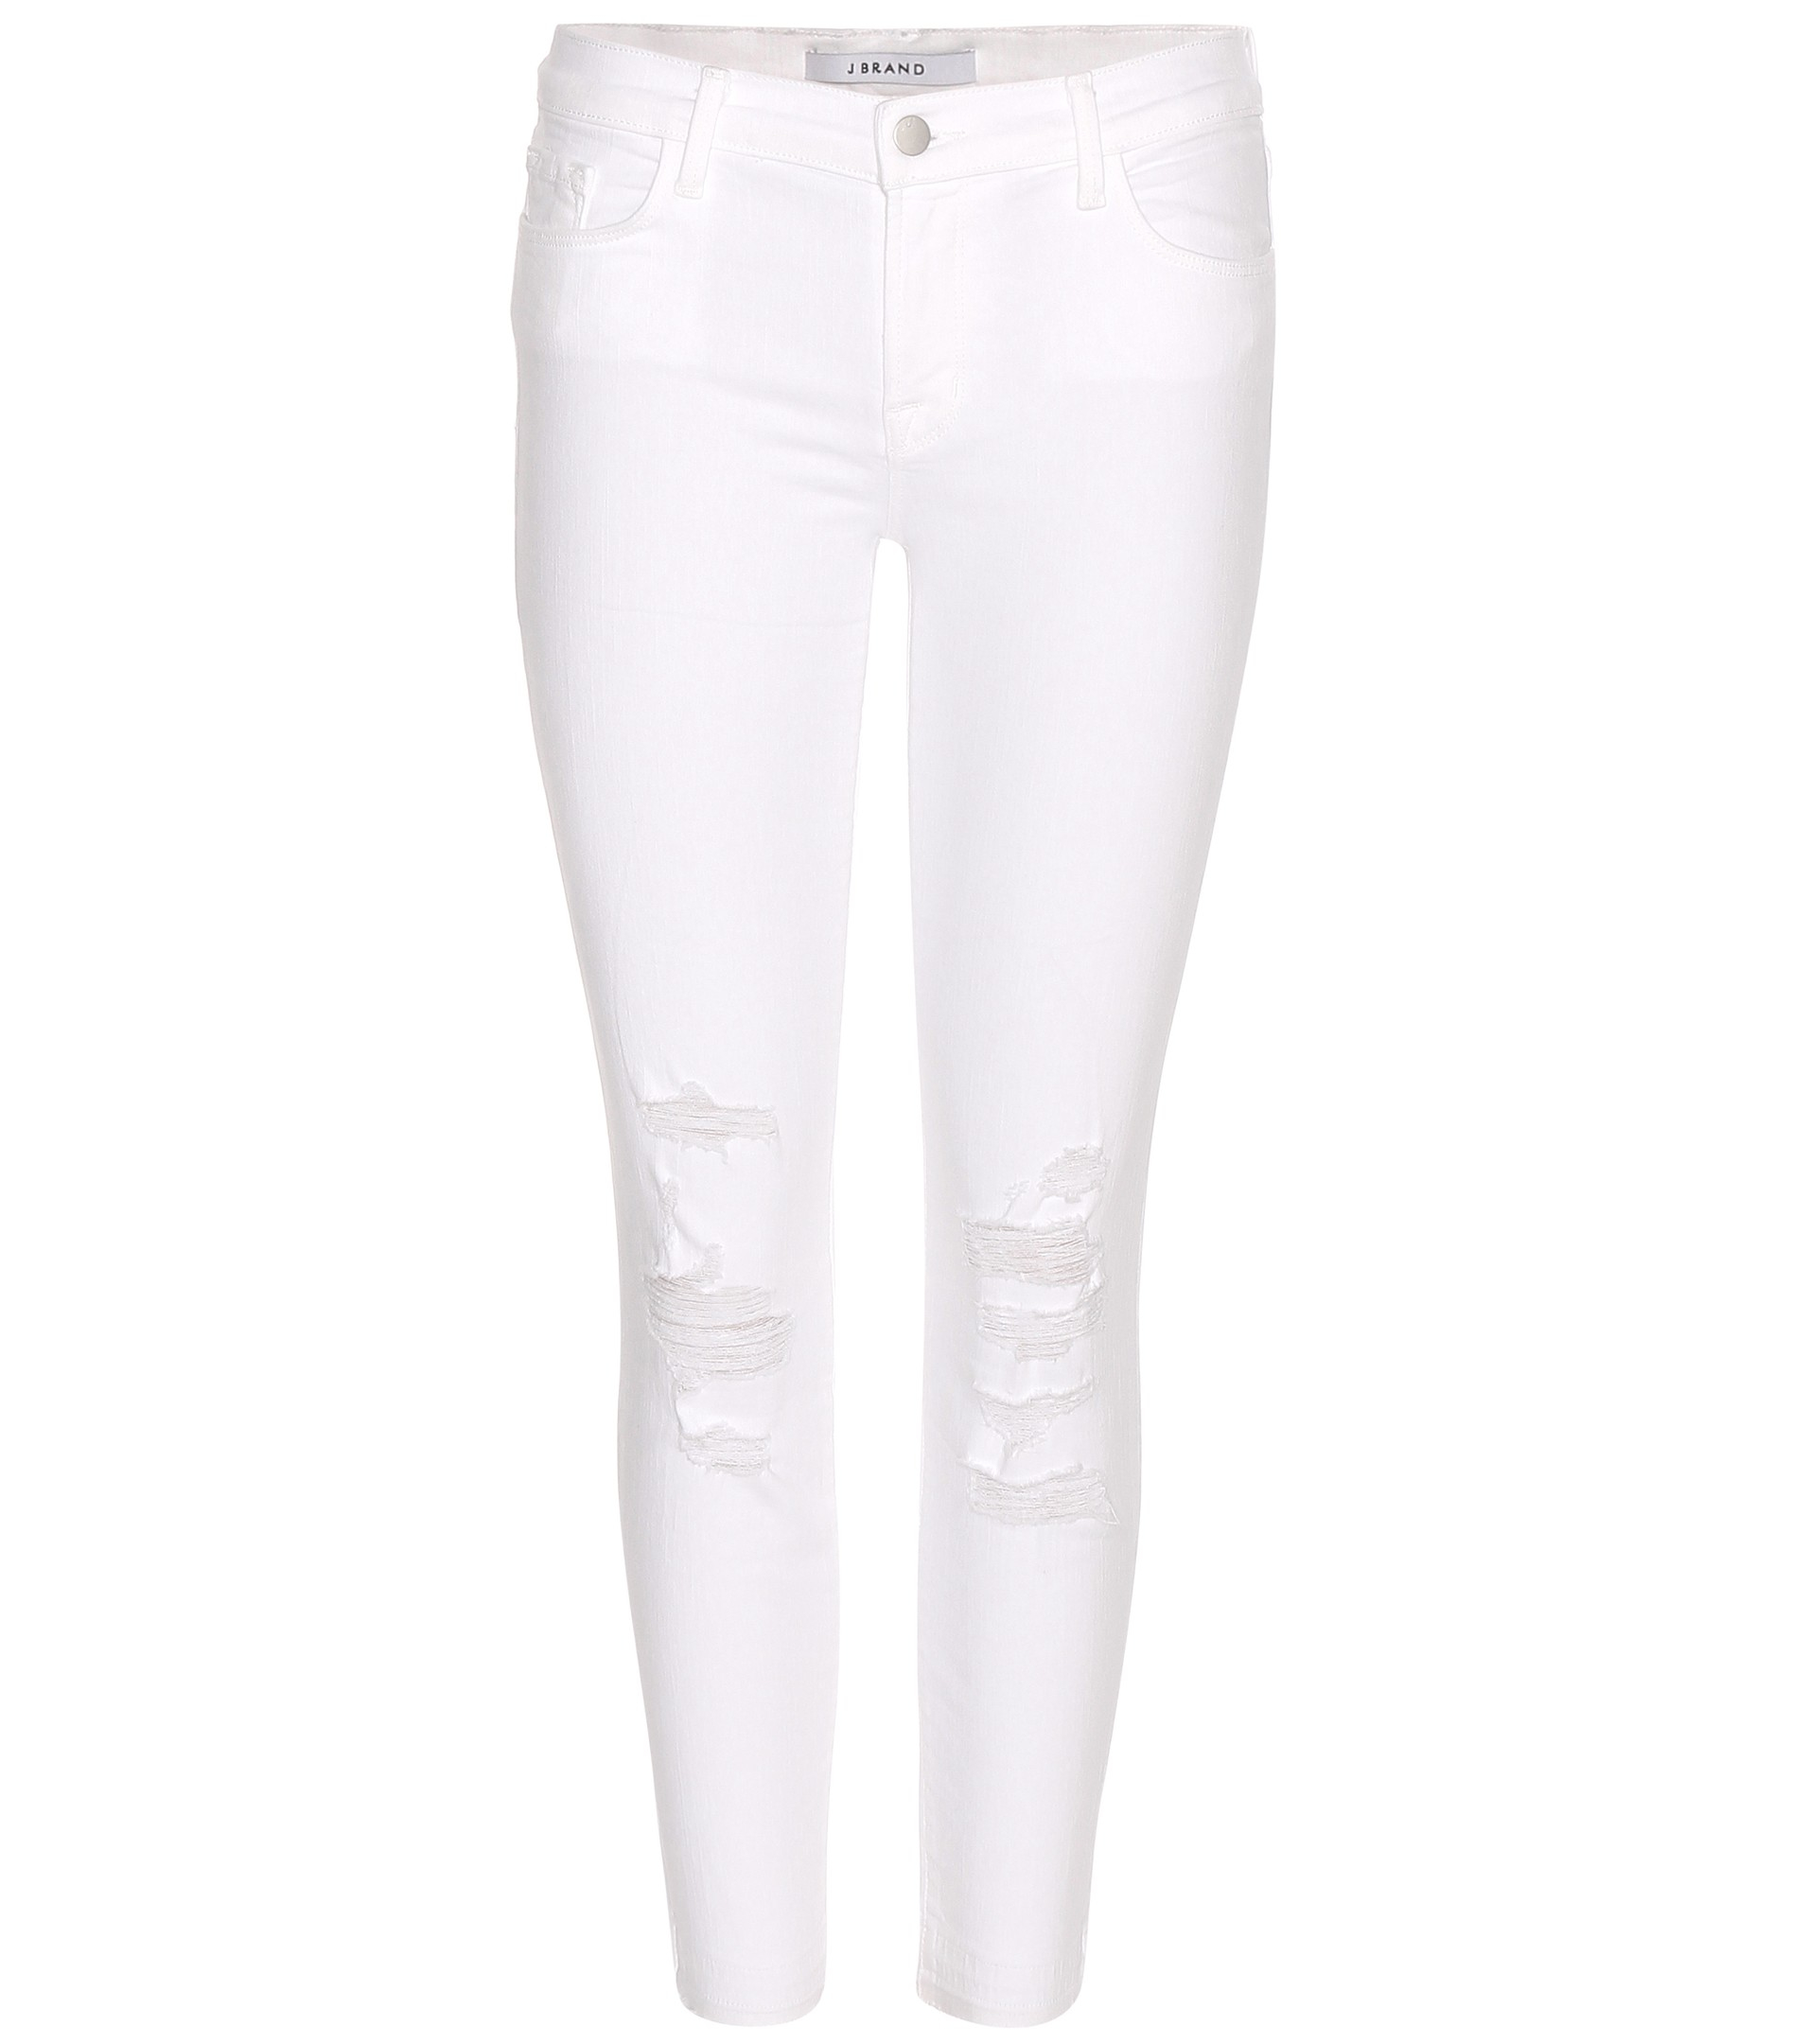 J brand Cropped Low Rise Distressed Skinny Jeans in White | Lyst